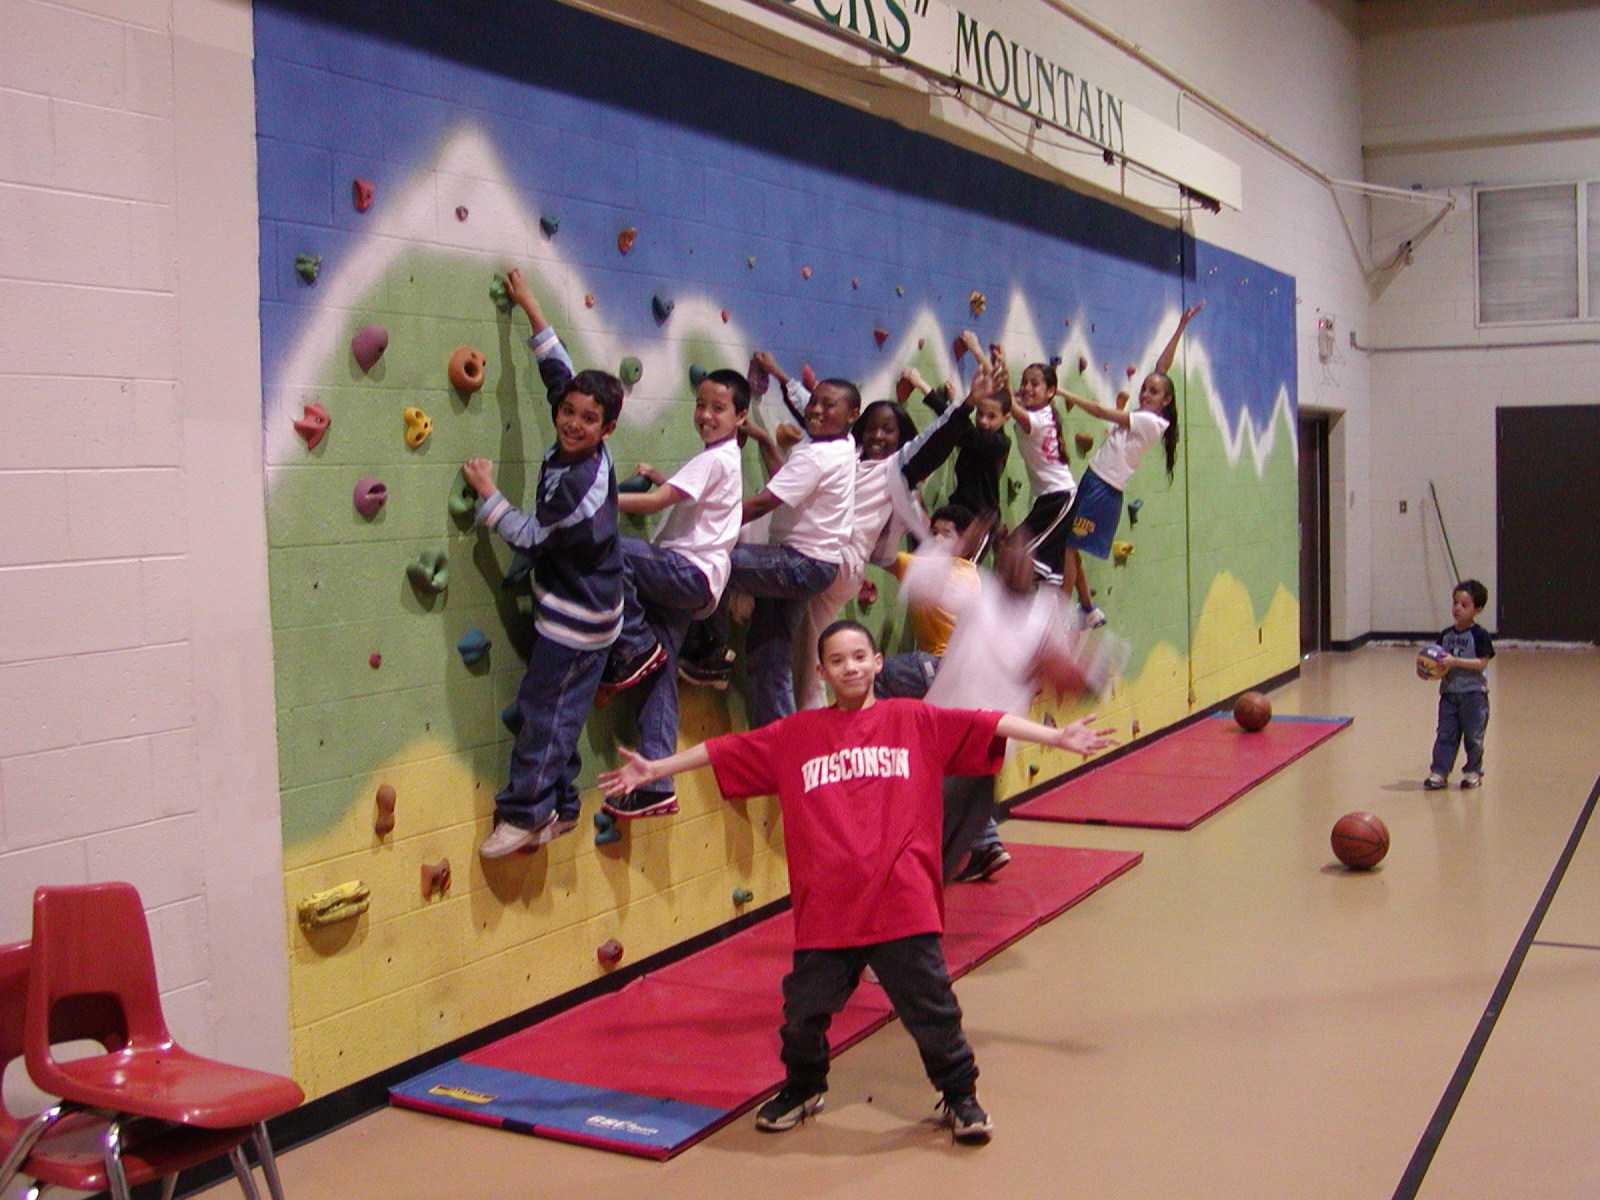 Youth Center climbing wall